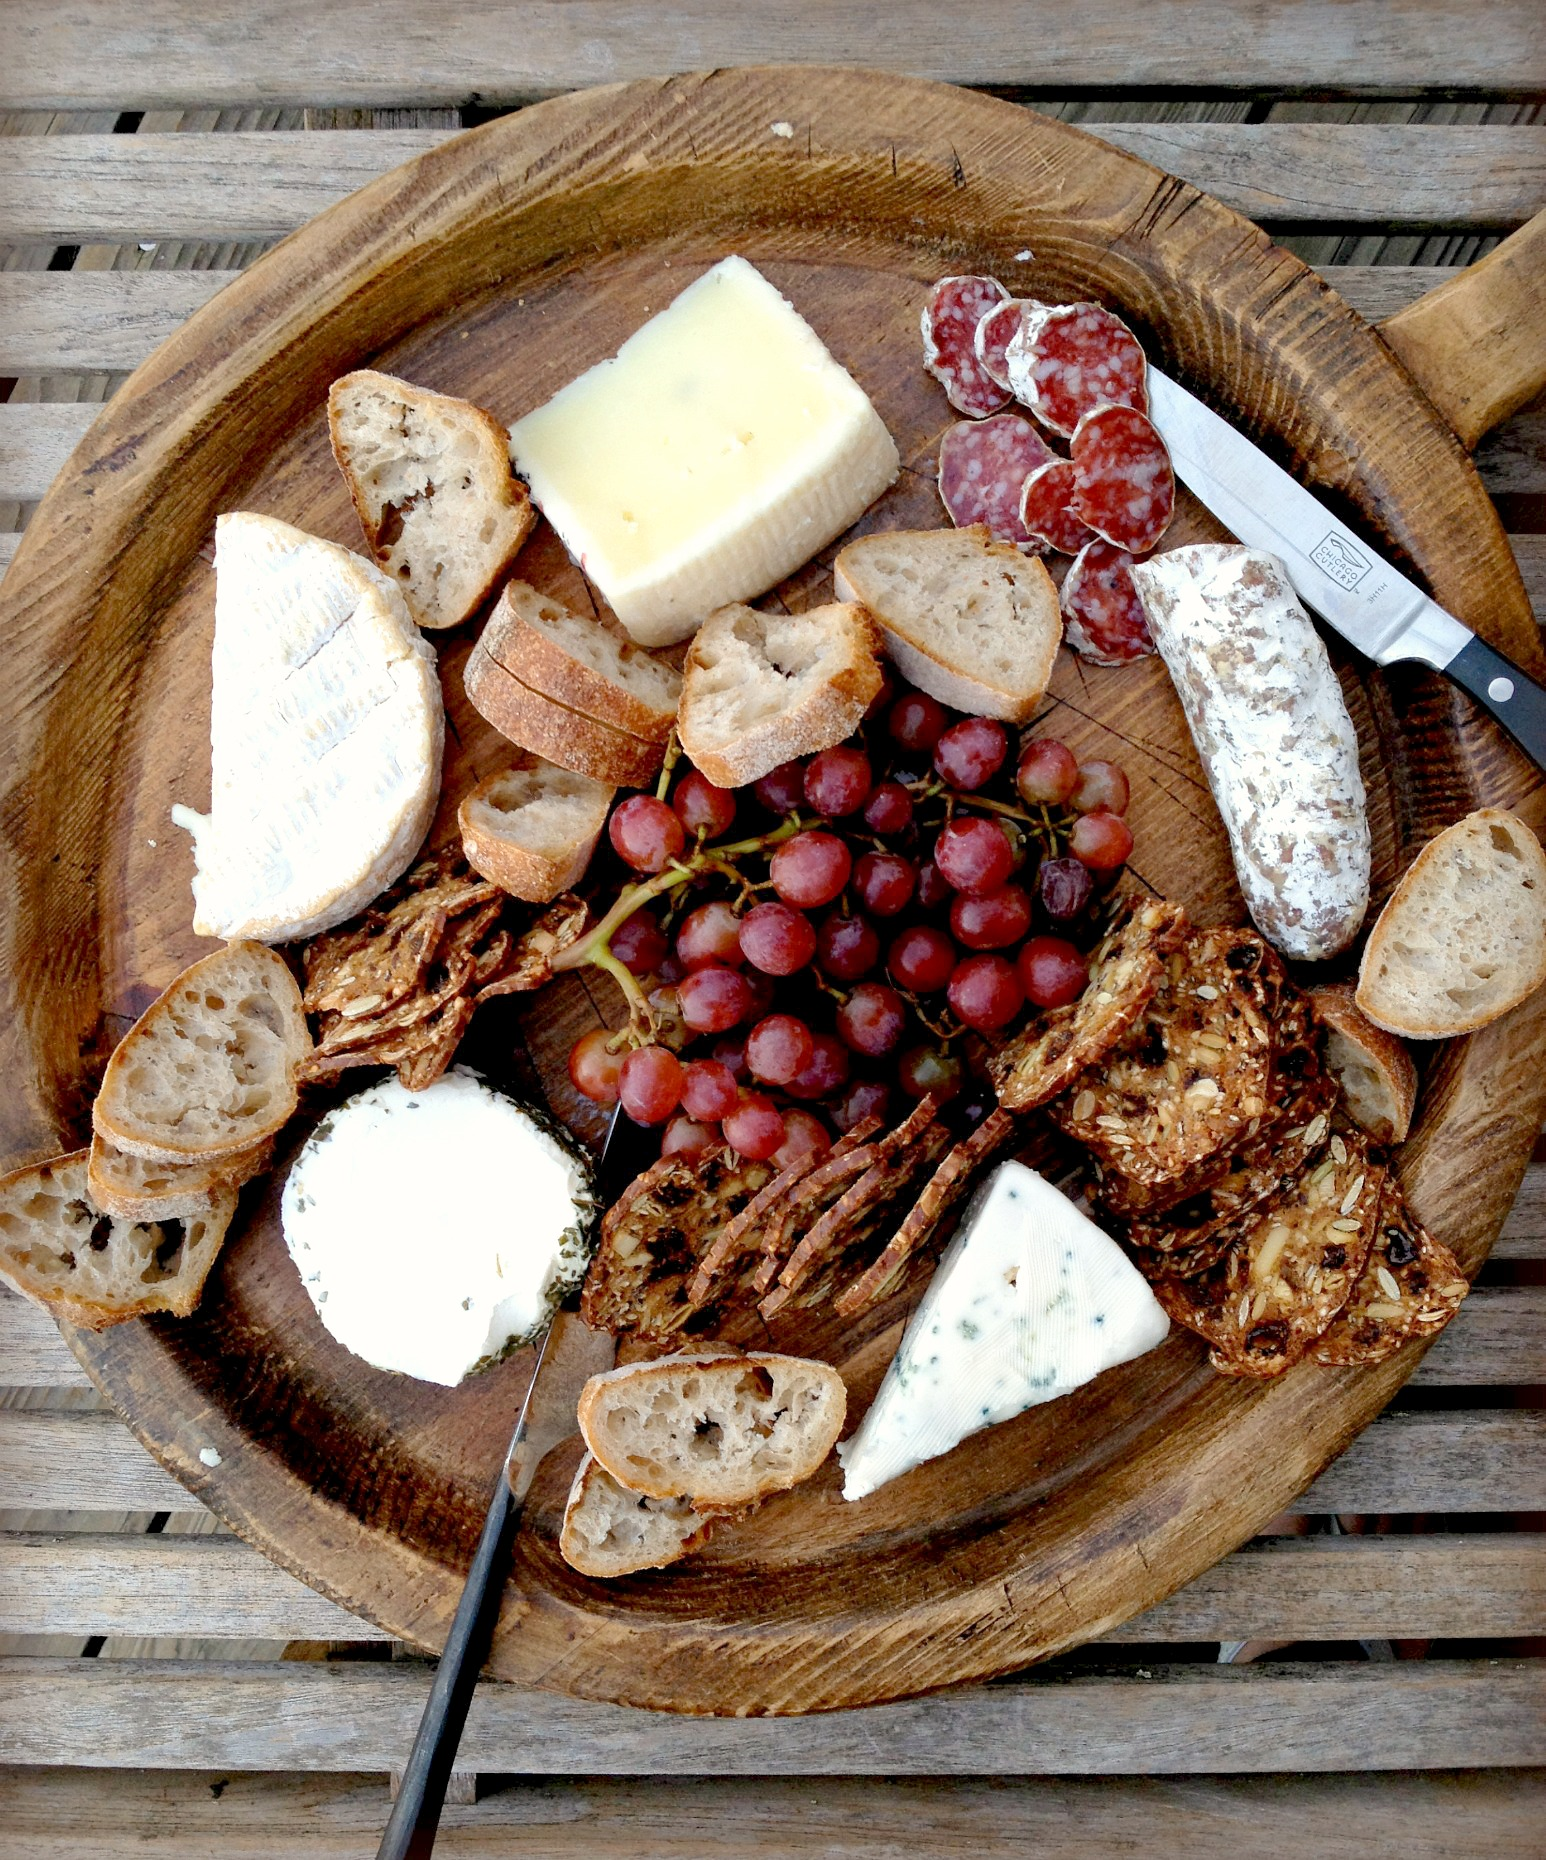 Cheese Board Ideas Pictures: Holiday Entertaining: Perfecting The Cheese Board